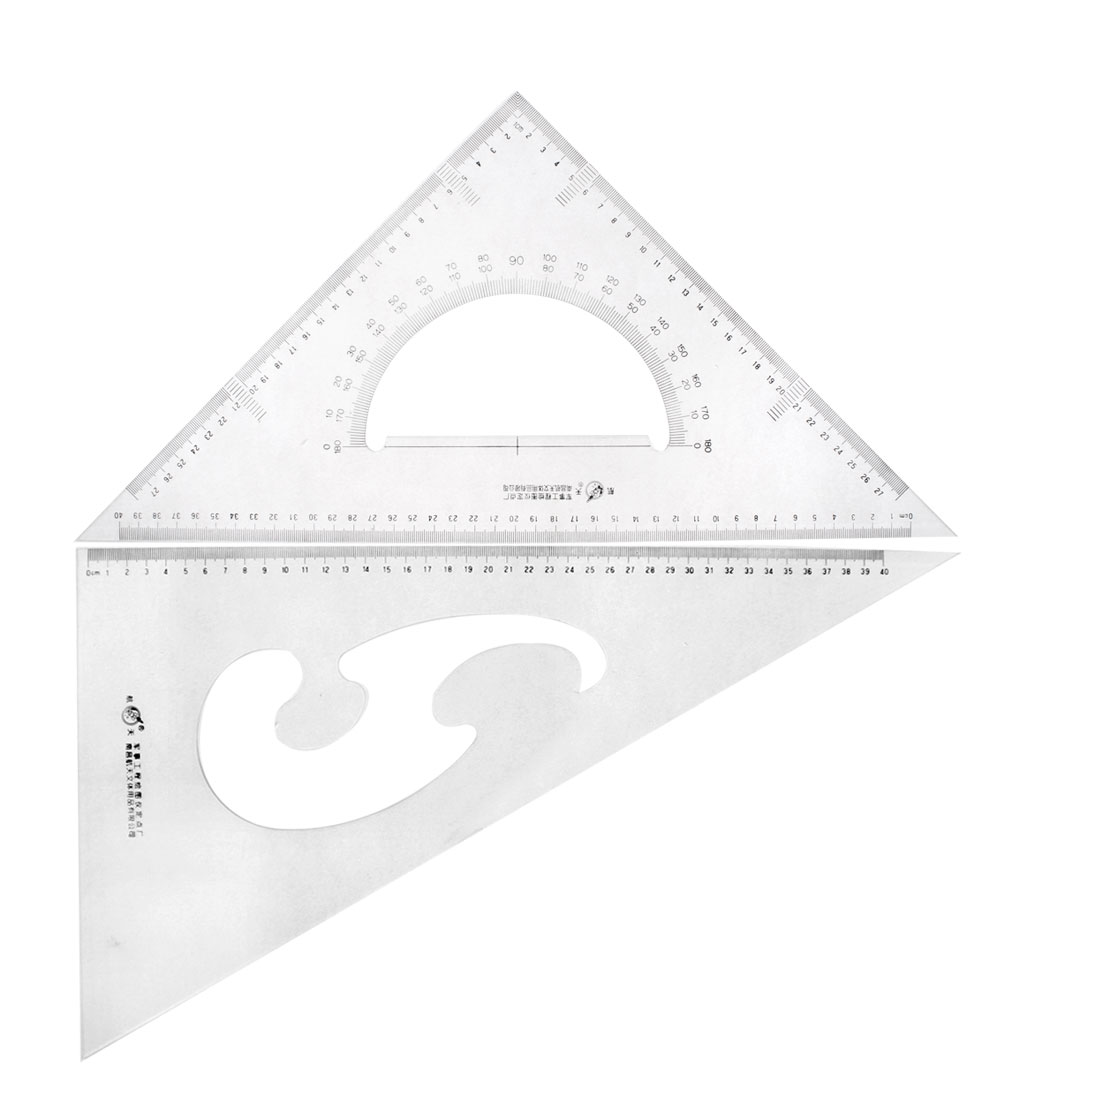 Student Stationery 30/60 45 Degree Triangle Rulers Protractor Drawing Set 2 Pcs